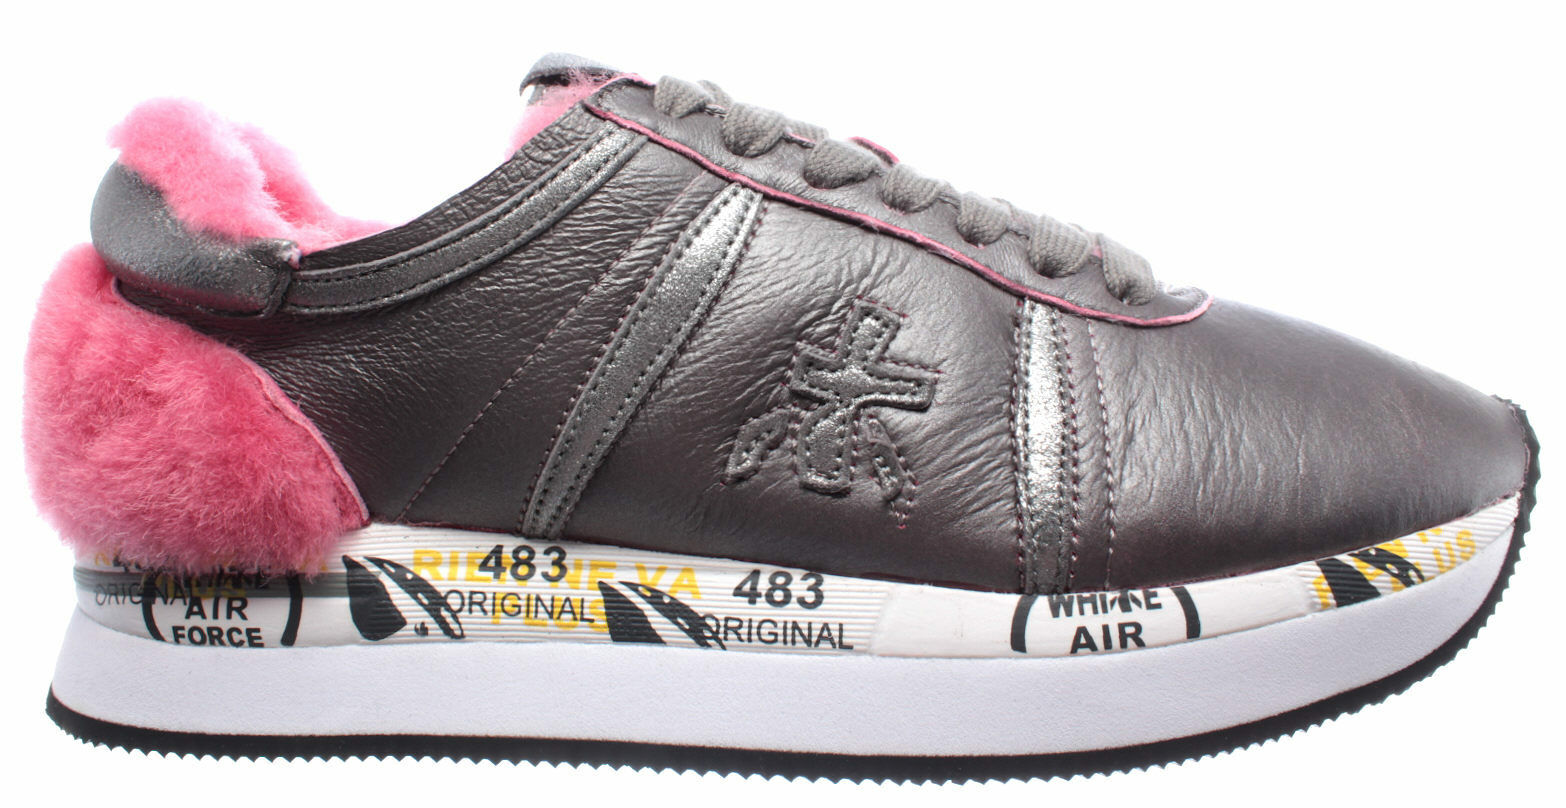 Women's shoes Sneakers PREMIATA Conny Conny Conny 2613 Leather Grey Pink New efb6ea